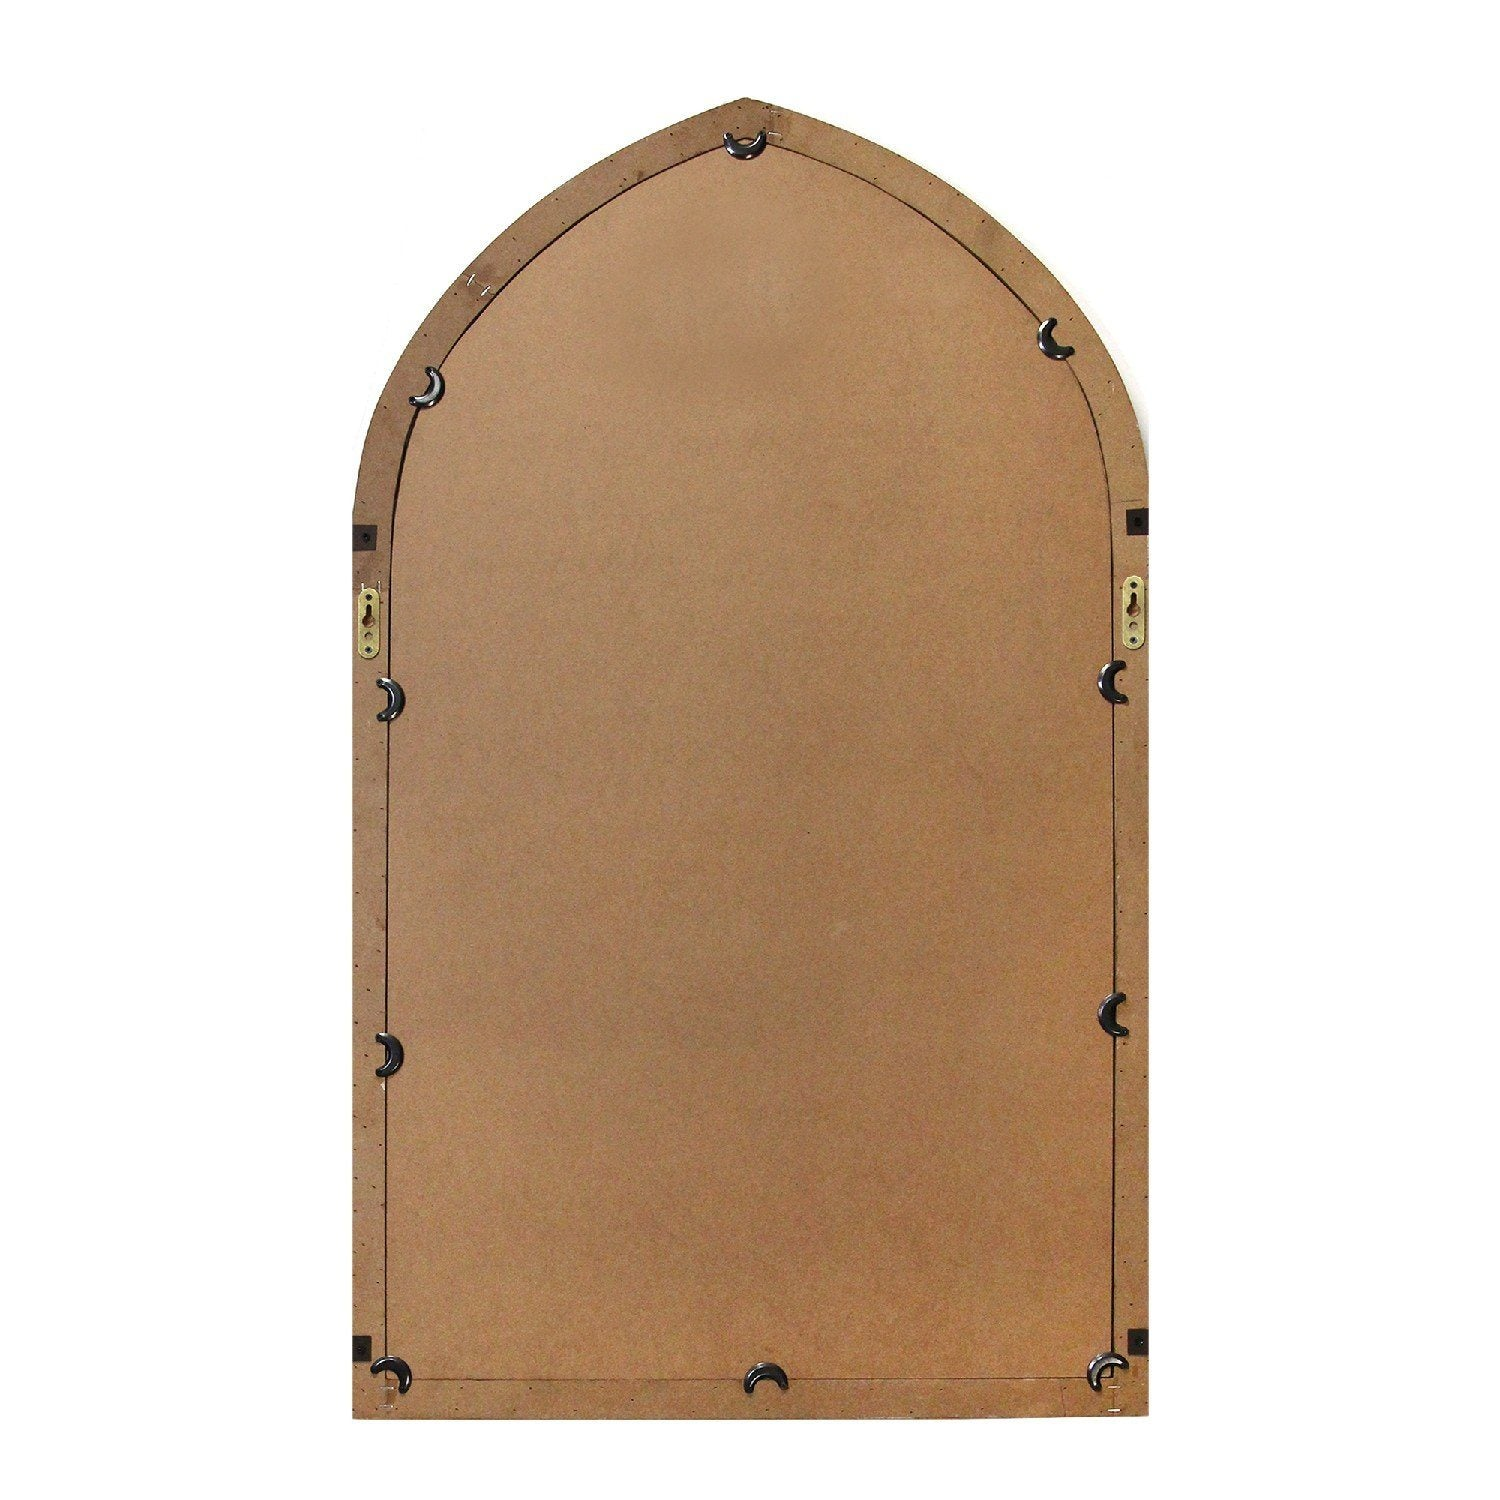 Tuck Arched Bronze & Wood Mirror Mirrors HomeRoots